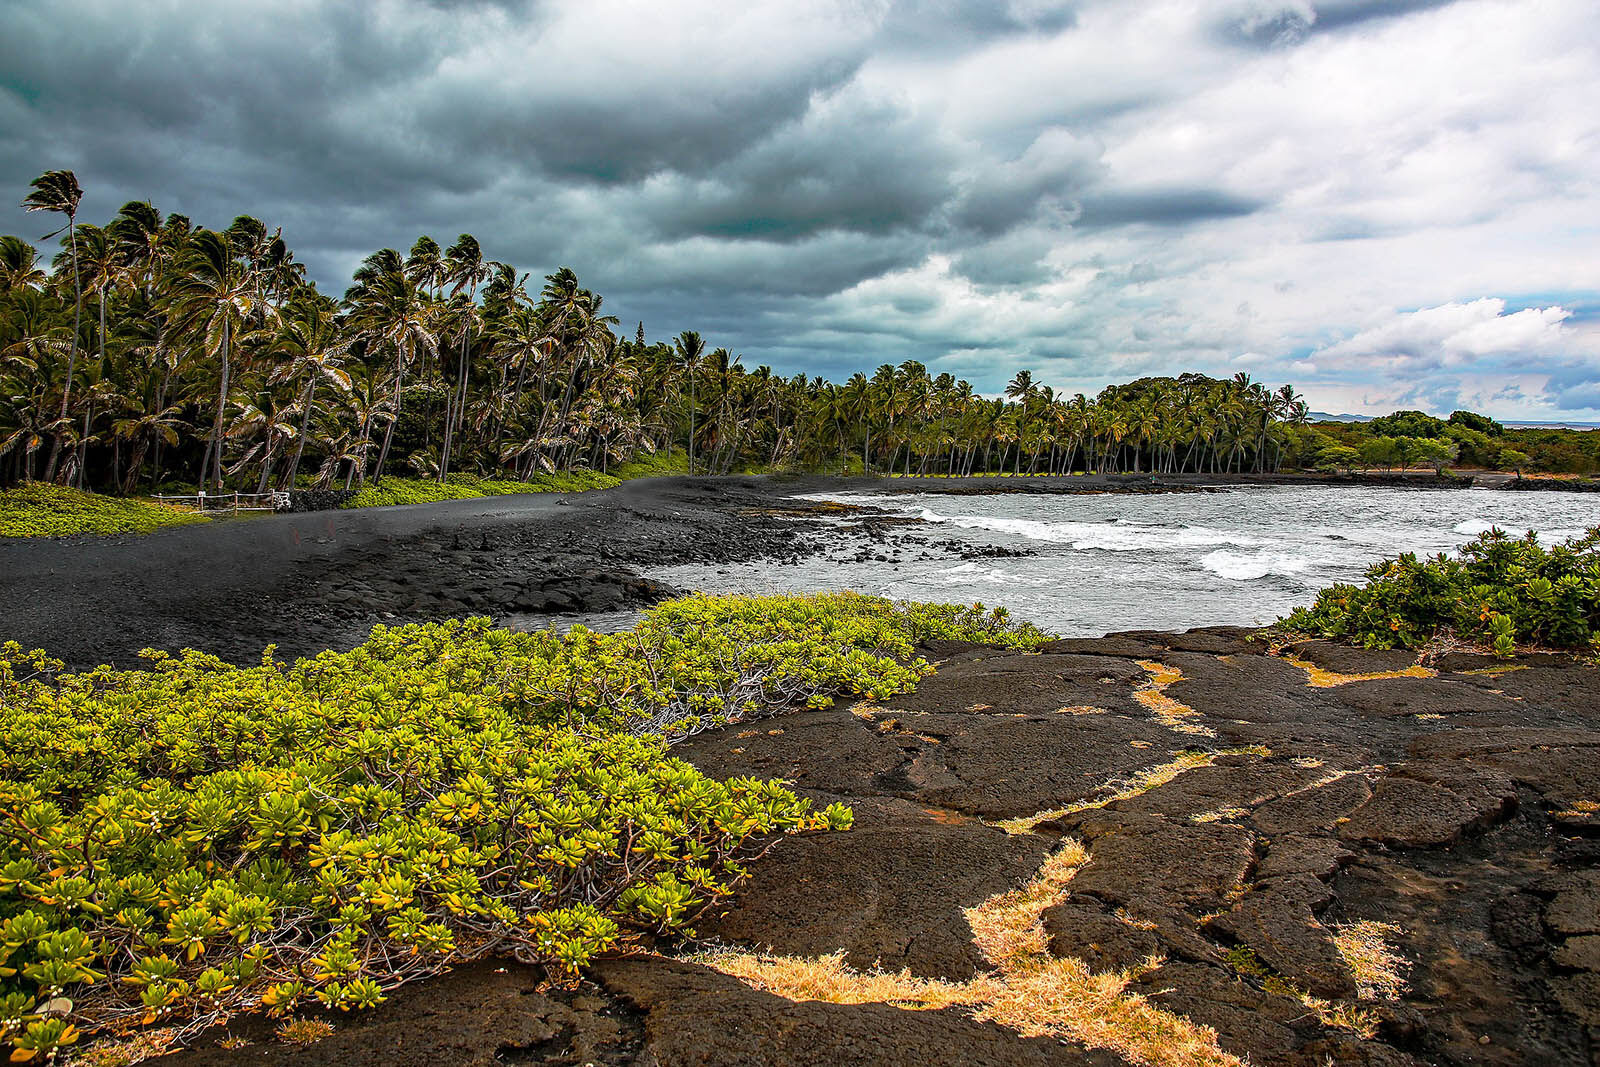 Punaluʻu Beach by Rennett Stowe from USA is licensed under CC BY 2.0